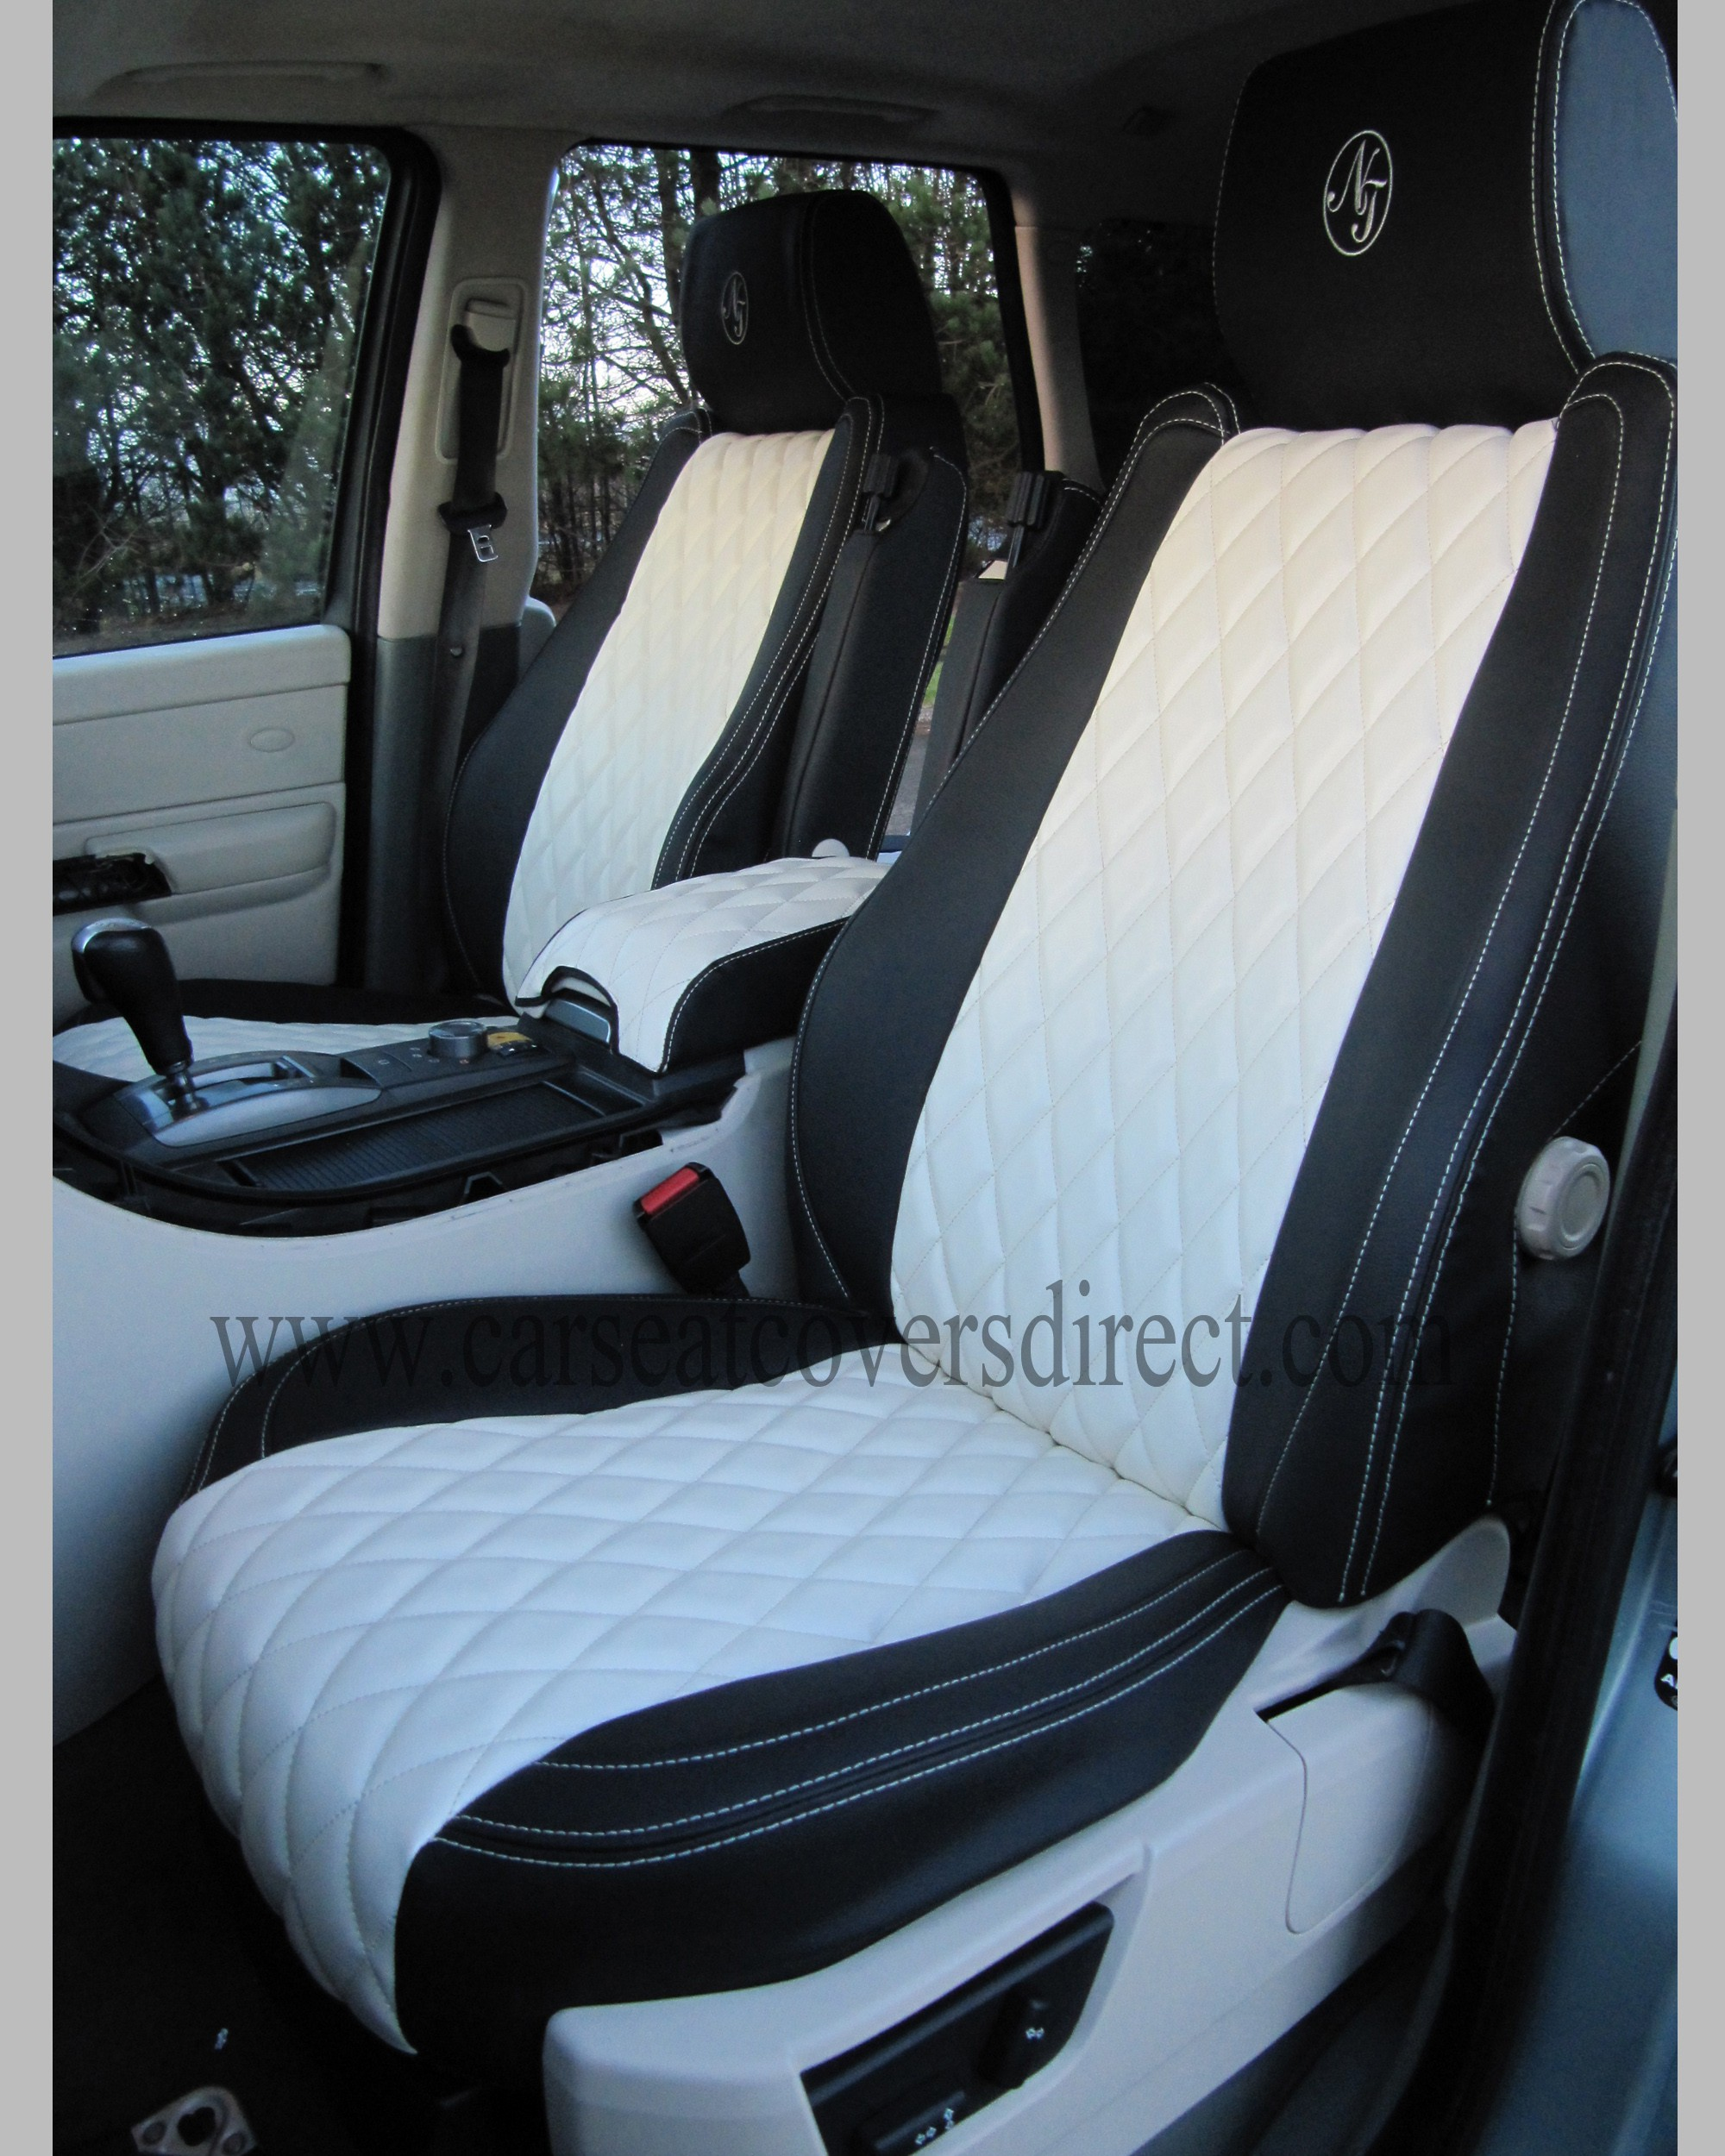 Range Rover Sport Seat Covers - Charcoal PVC with Sea Green Side Panels